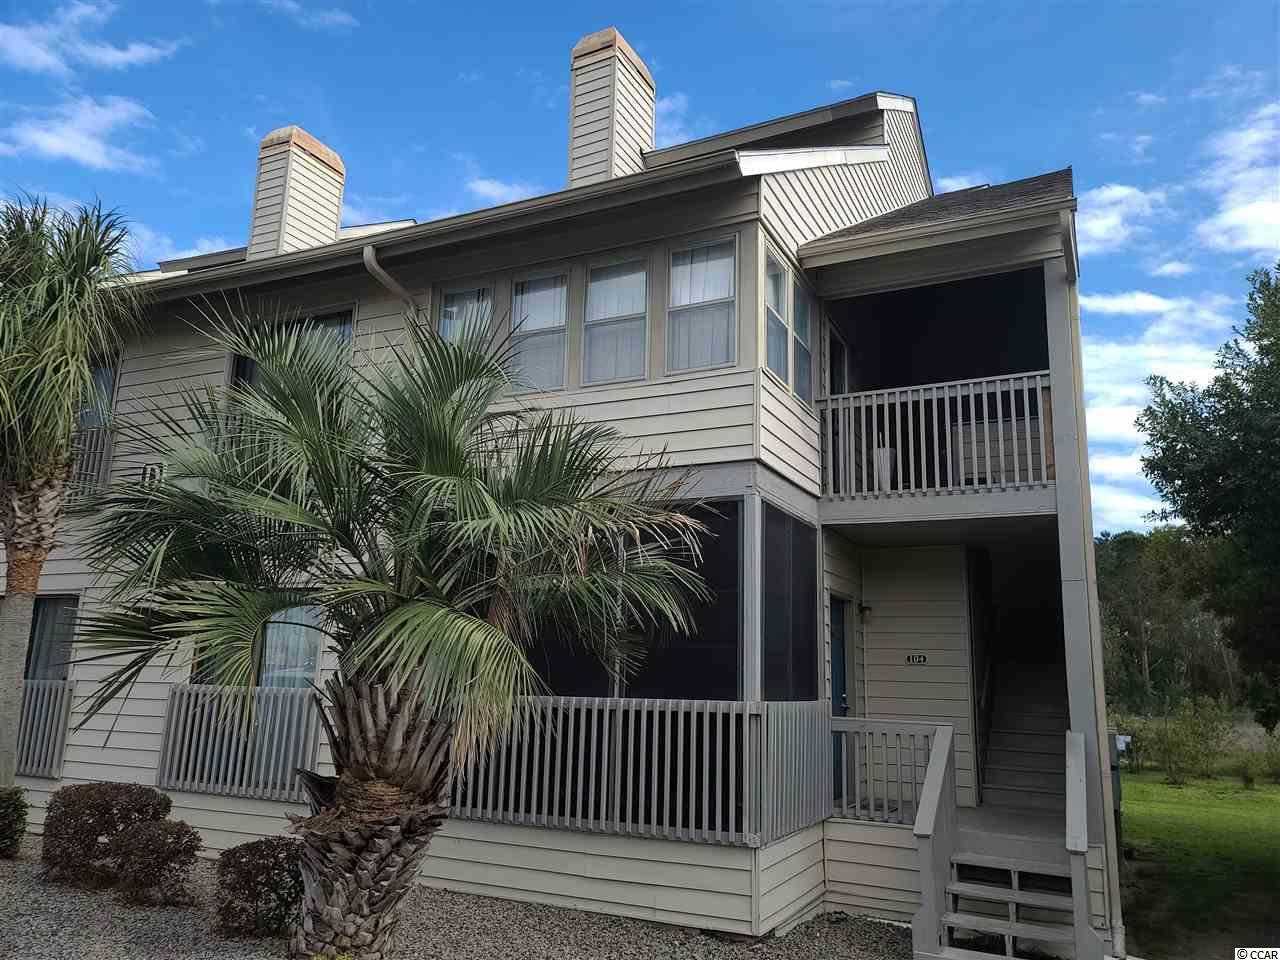 Location, Location, Location.  Be the proud owner of this 4 bedroom condo in the area of Surfside Beach, the family beach.  This is a short bike ride or walk down to the beach and the pier area of Surfside.  This unique unit has 4 bedrooms and a wood burning fireplace. There have been so many upgrades done to this unit, you will just need to see it.   The front porch has been closed to add an additional room to the unit which can be used as an office or 4 seasons room.  The living room is open with a nice wood burning fireplace to enjoy on those chilly winter nights.  The kitchen has been remodeled with a breakfast bar and a beautiful copper ceiling fa-sad. The two back porches have been updated with new roofs, screening and ez porch type windows for more outdoor use of the area in your home.  The porches have a wonderful view of the pond, so you can sit on the porch in the mornings with your coffee and enjoy the view and the sounds of the wildlife.  In the evenings, you could use the area to relax and unwind.  The upstairs has a common living area for the 2 bedrooms up there with one of the rooms having a loft.  Perfect family beach retreat.  The community has its own pool and is walking distance to the grocery store, shopping and restaurants.  Don't let this great place pass you by.  Owner will also consider partial owner financing. Call today to schedule your showing.